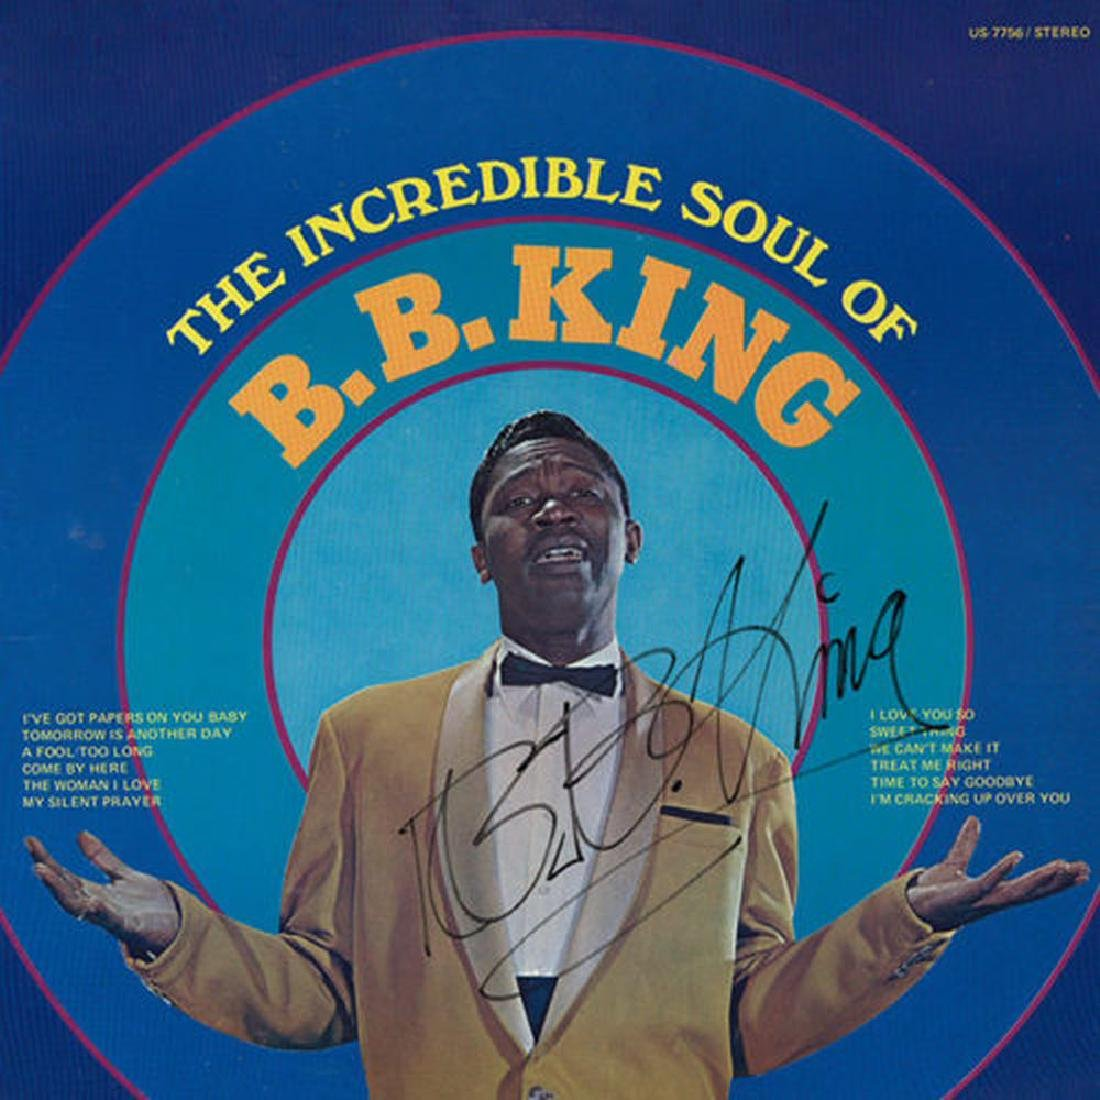 B.B. King Signed The Incredible Soul Album